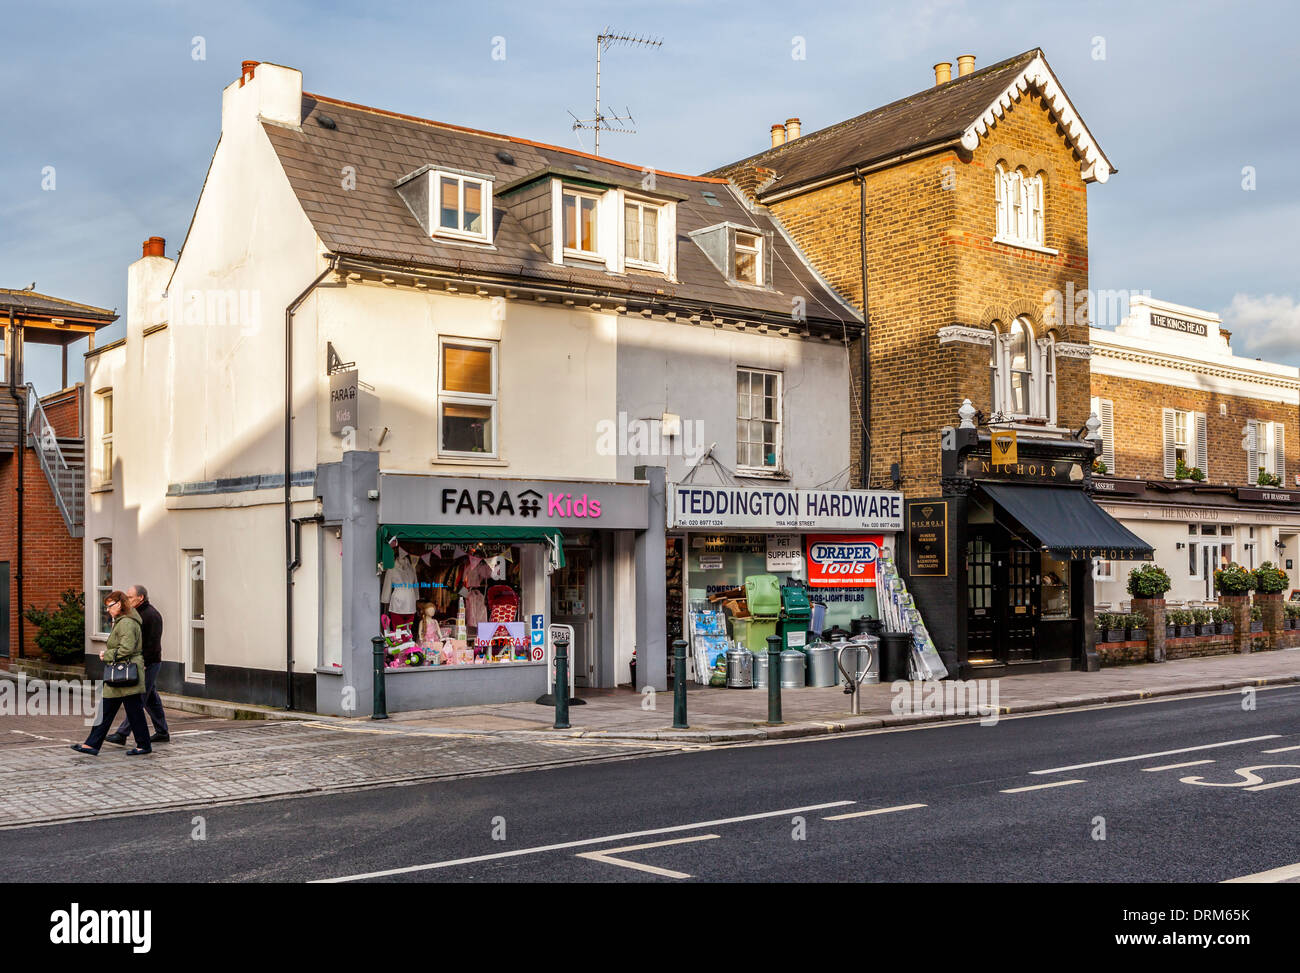 High street shops - Fara Kids, Hardware store, Nichols Jeweller and the King's Head pub in Teddington, Greater London, Uk - Stock Image